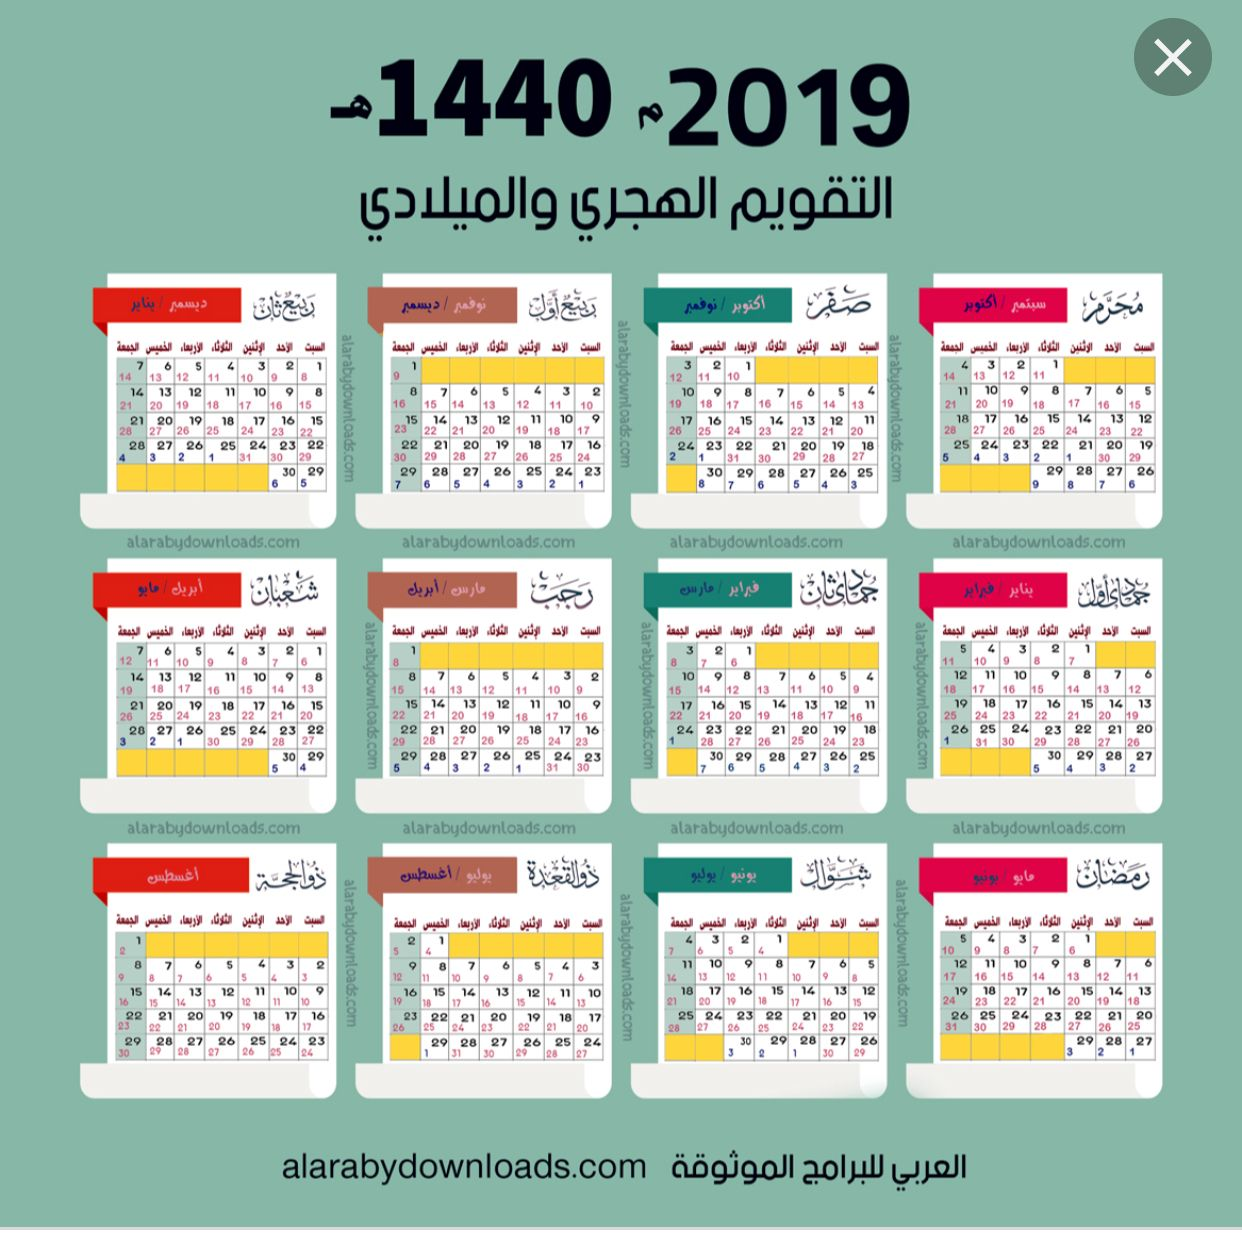 Pin By Samitvhd Rafiq On انا Calendar Calendar 2020 Hijri Calendar